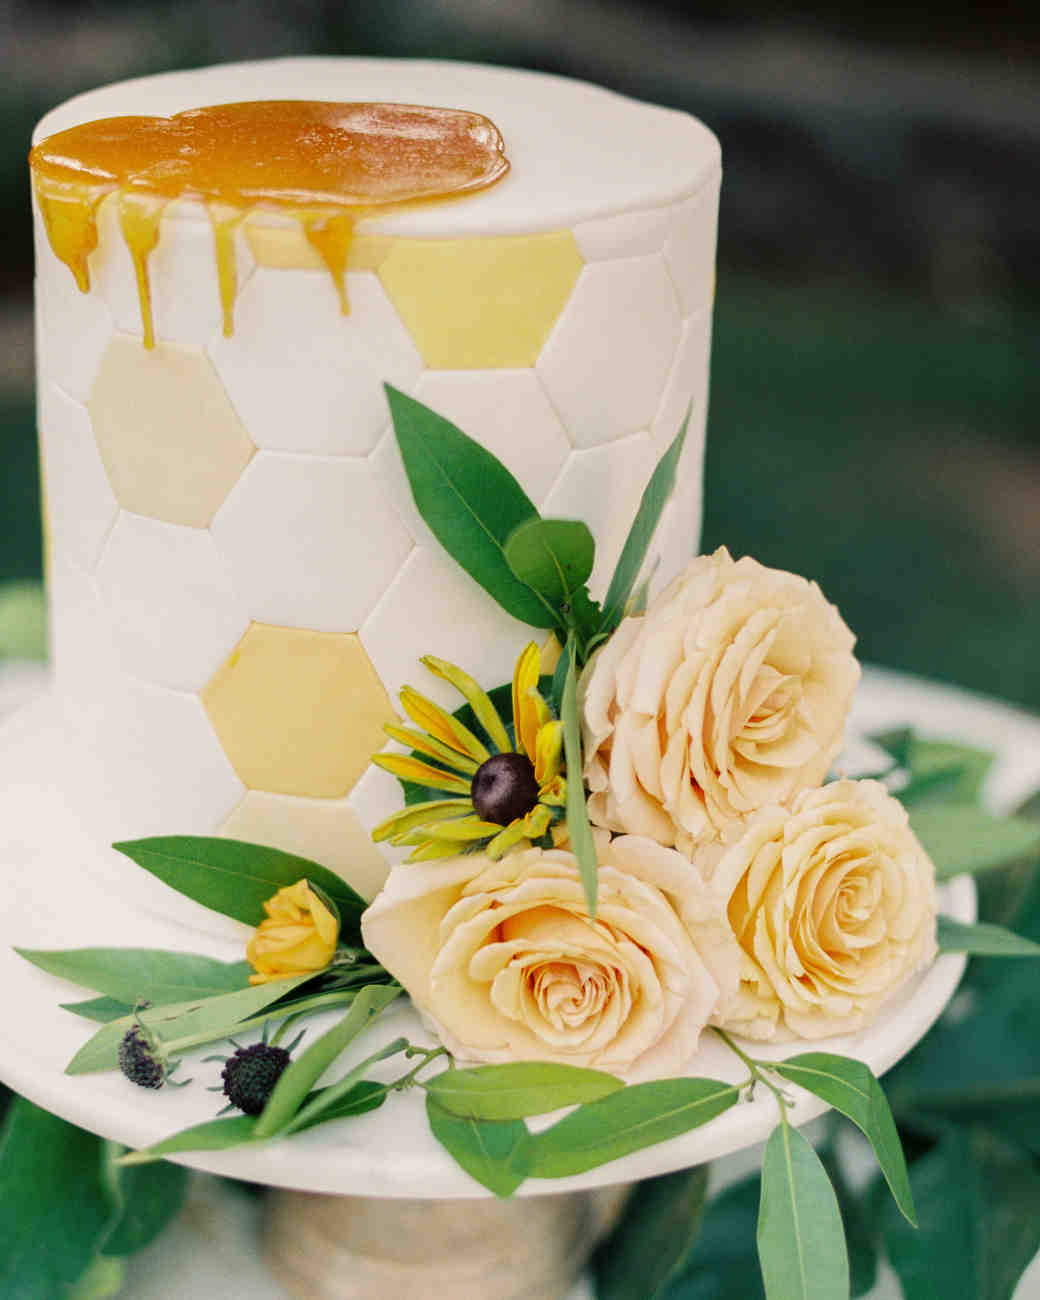 Honeycomb Wedding Inspiration, Wedding Cake with Honeycomb Motif and Fresh Honey Drizzle